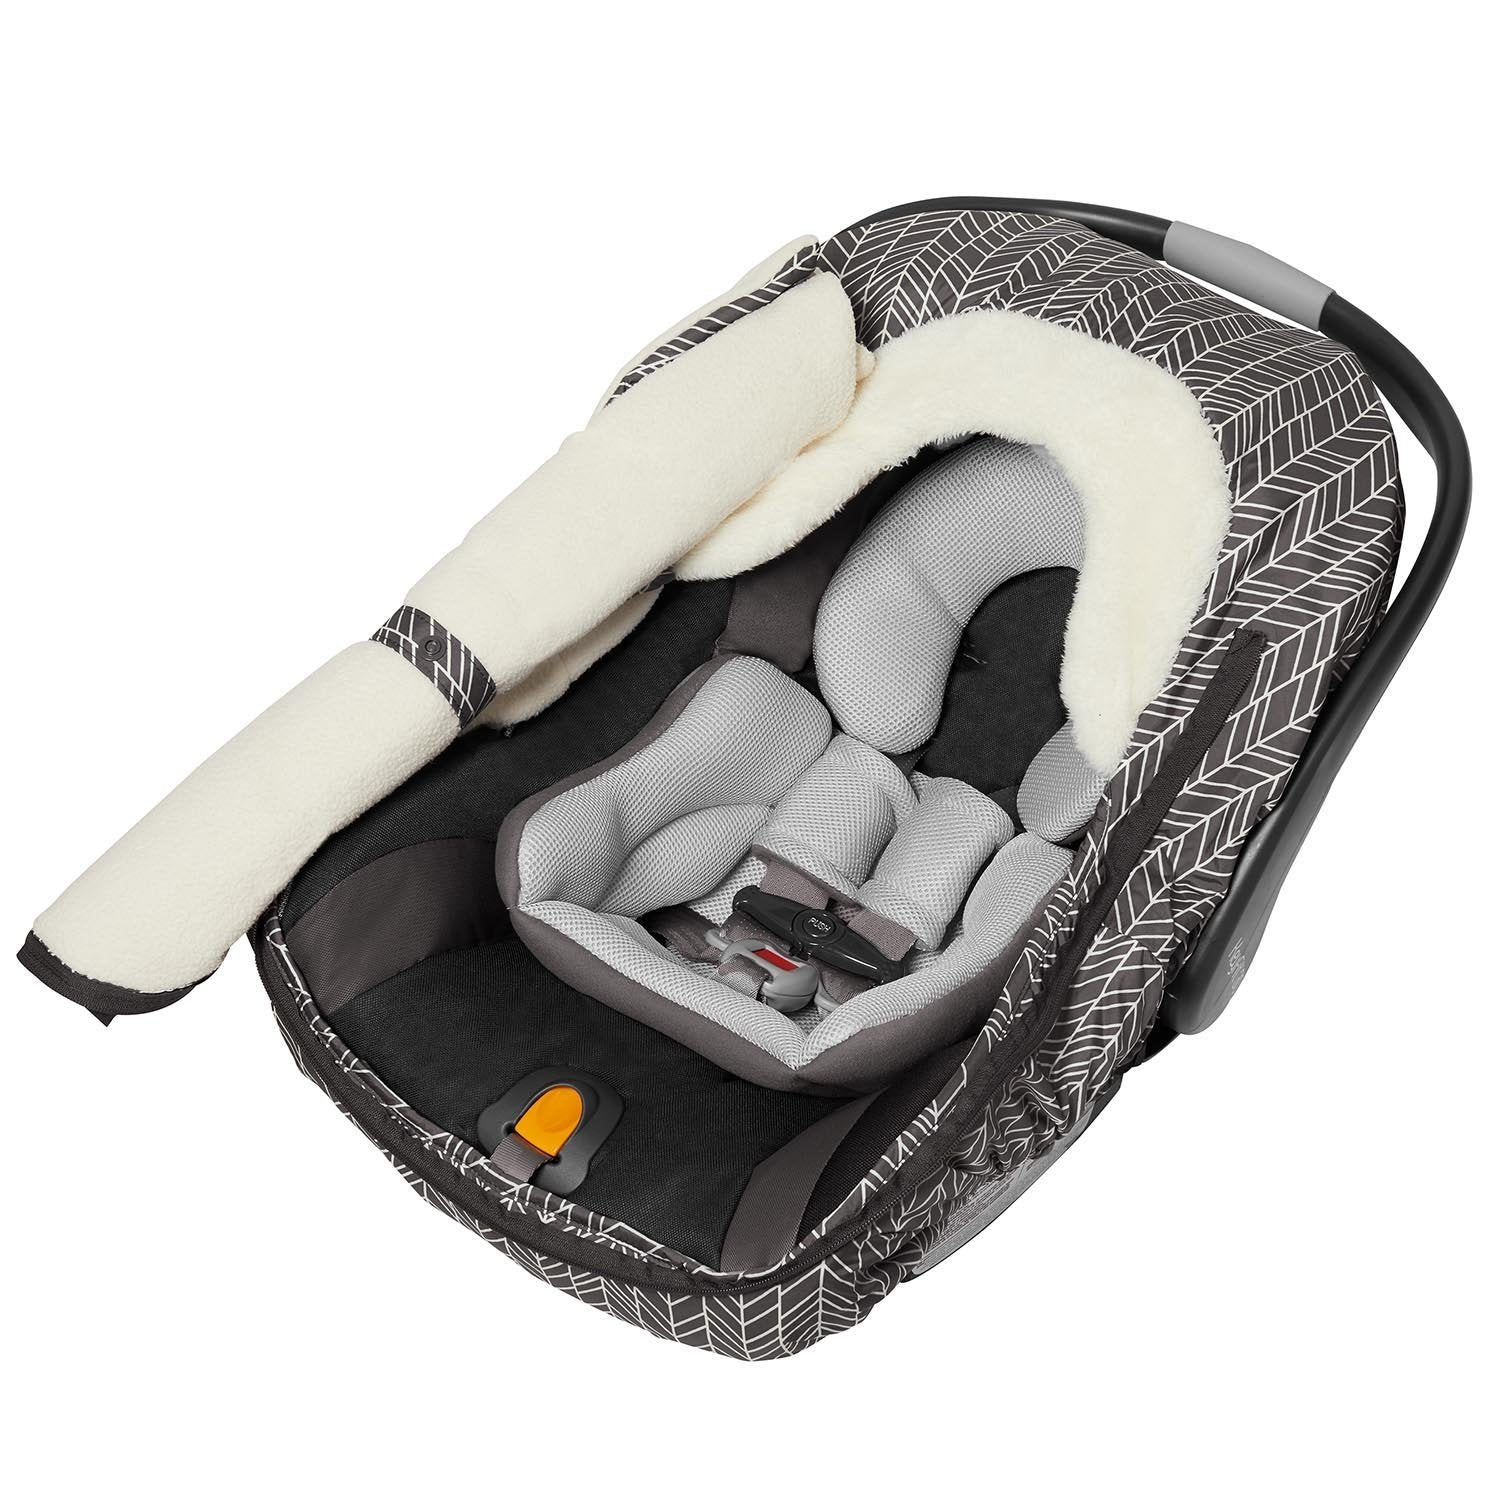 Skip Hop Stroll Go Car Seat Cover In Grey Feather Zipped Open